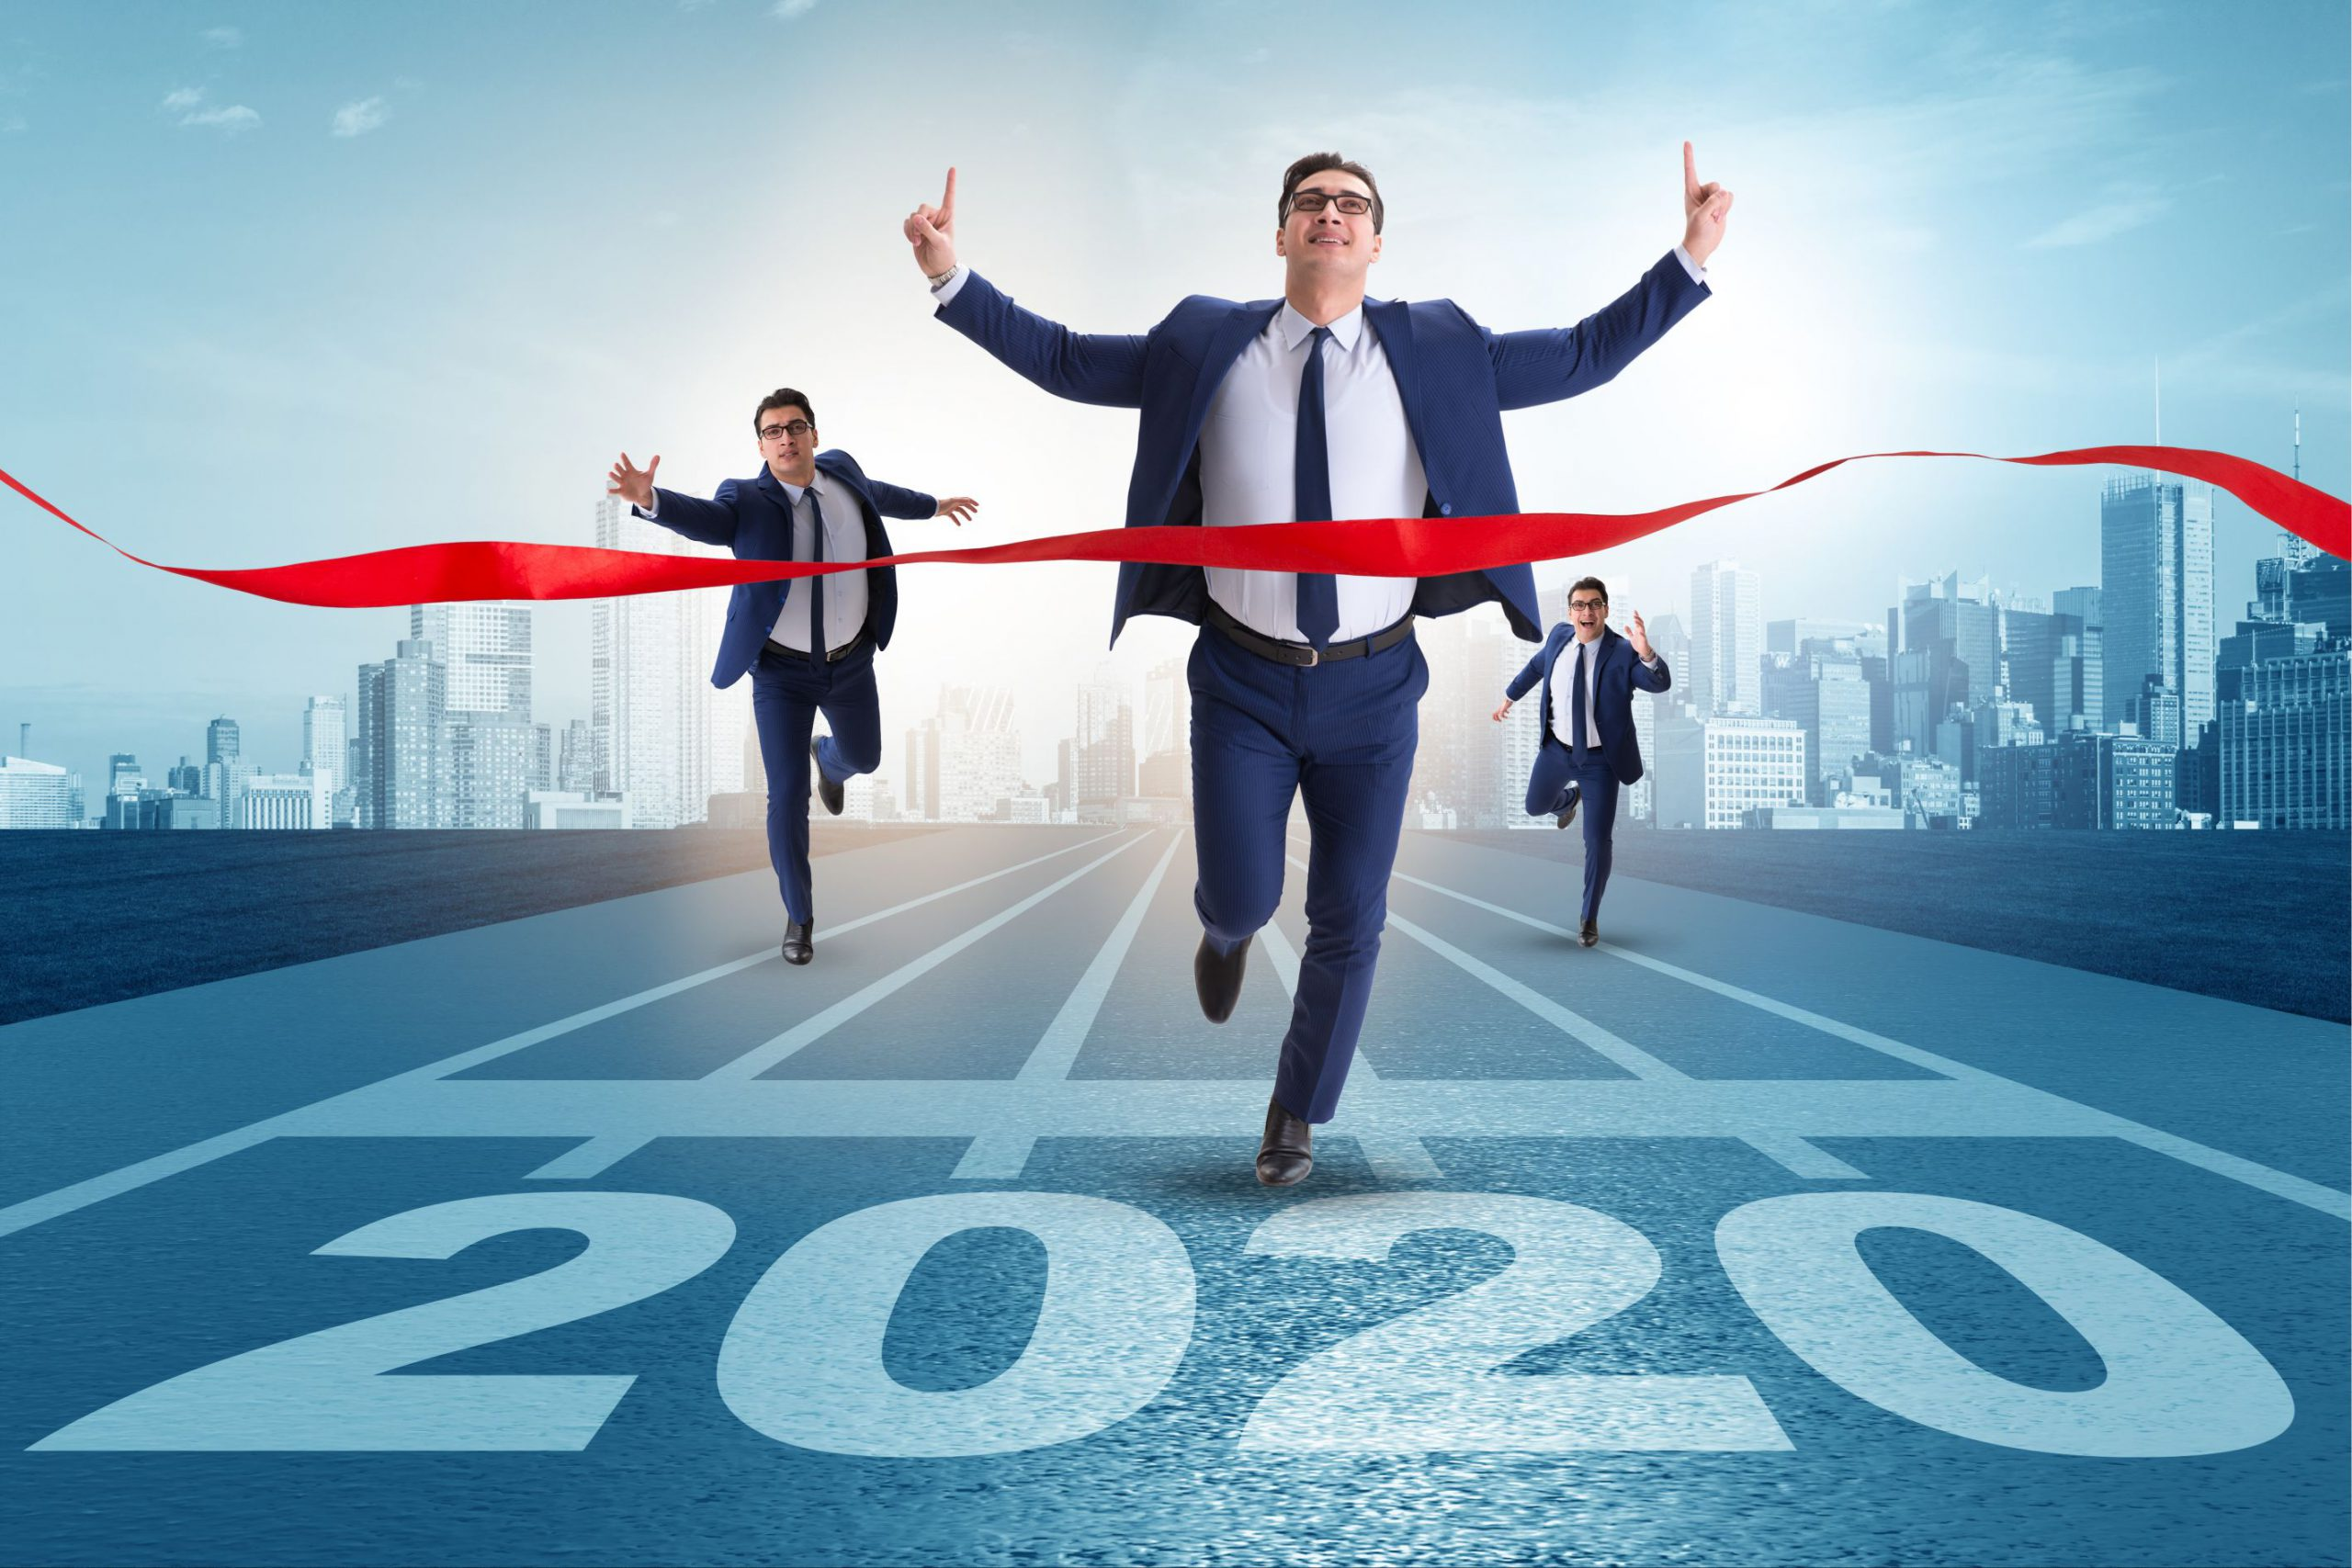 TOPS courtiers immobiliers 2020 quebec